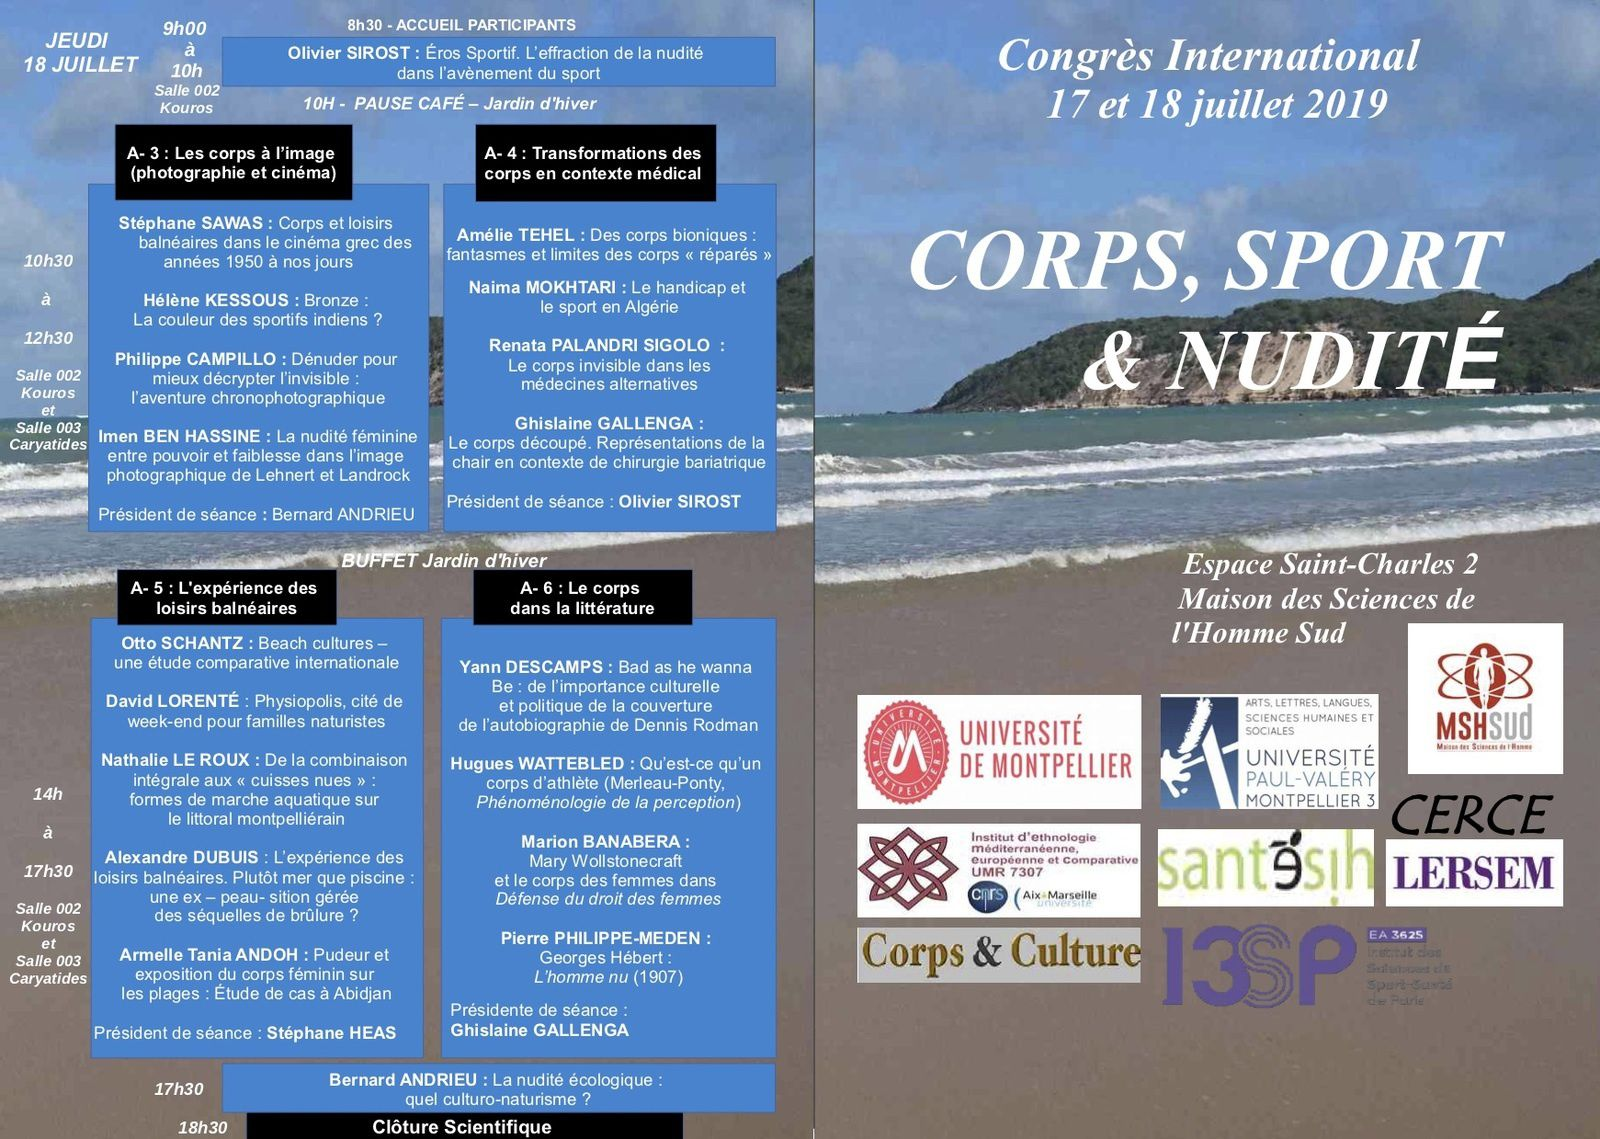 Congrès international : Corps, sport & nudité